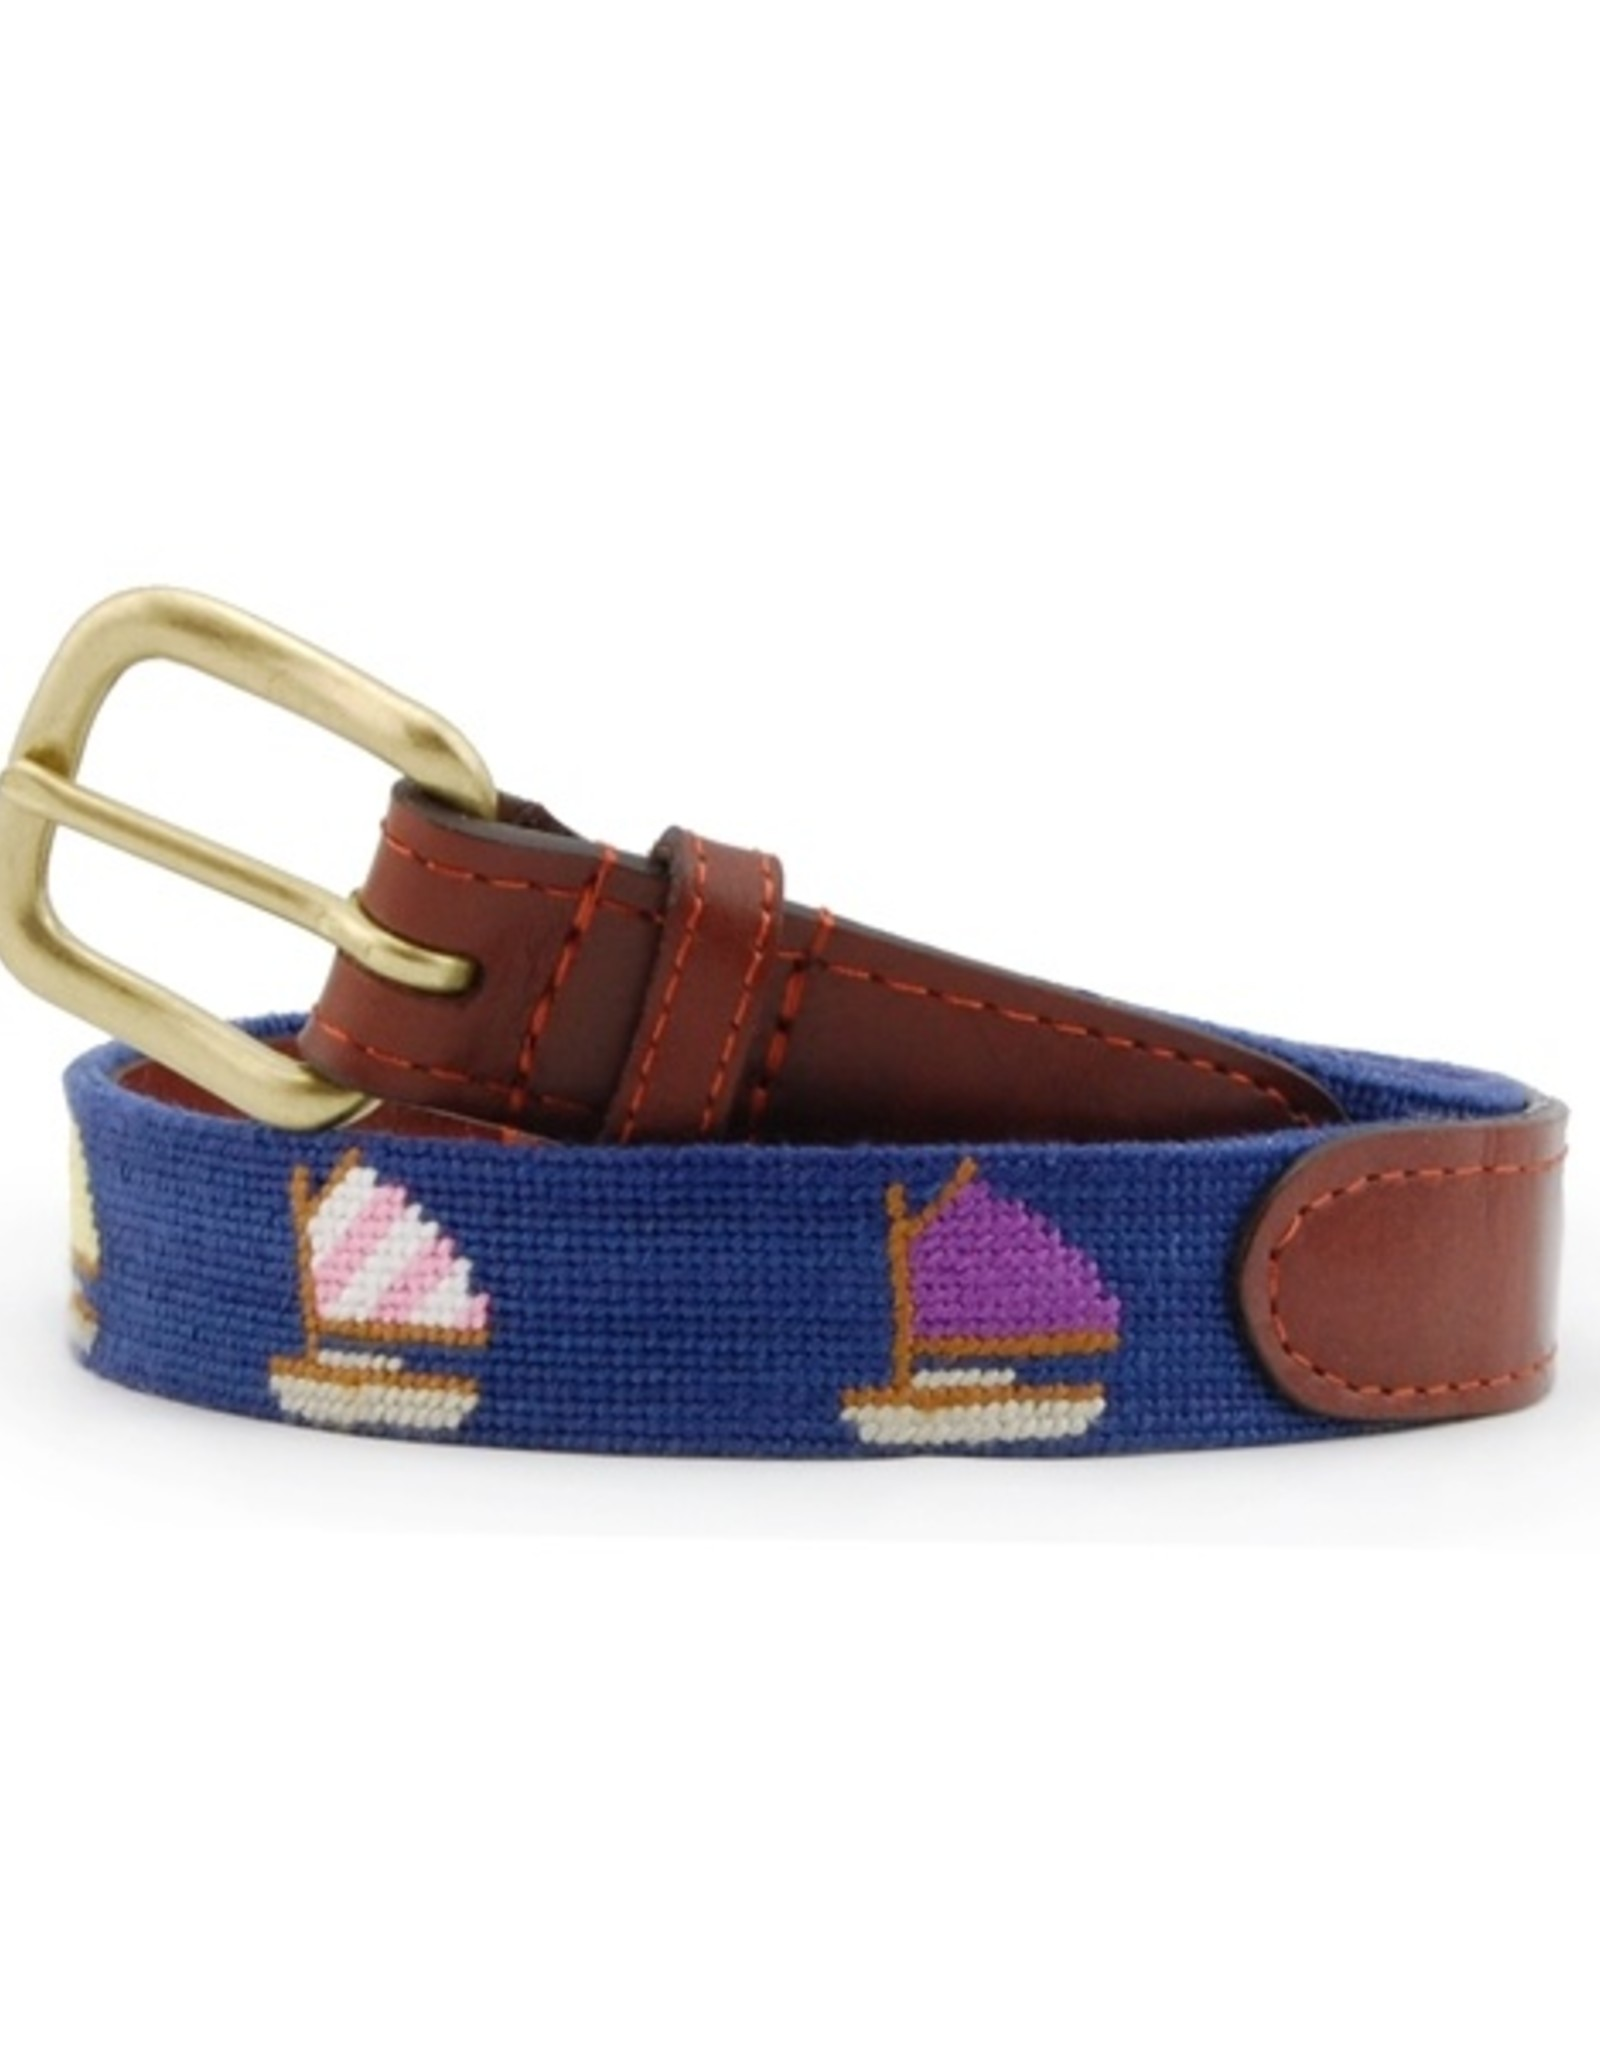 Smathers and Branson Childrens Belt